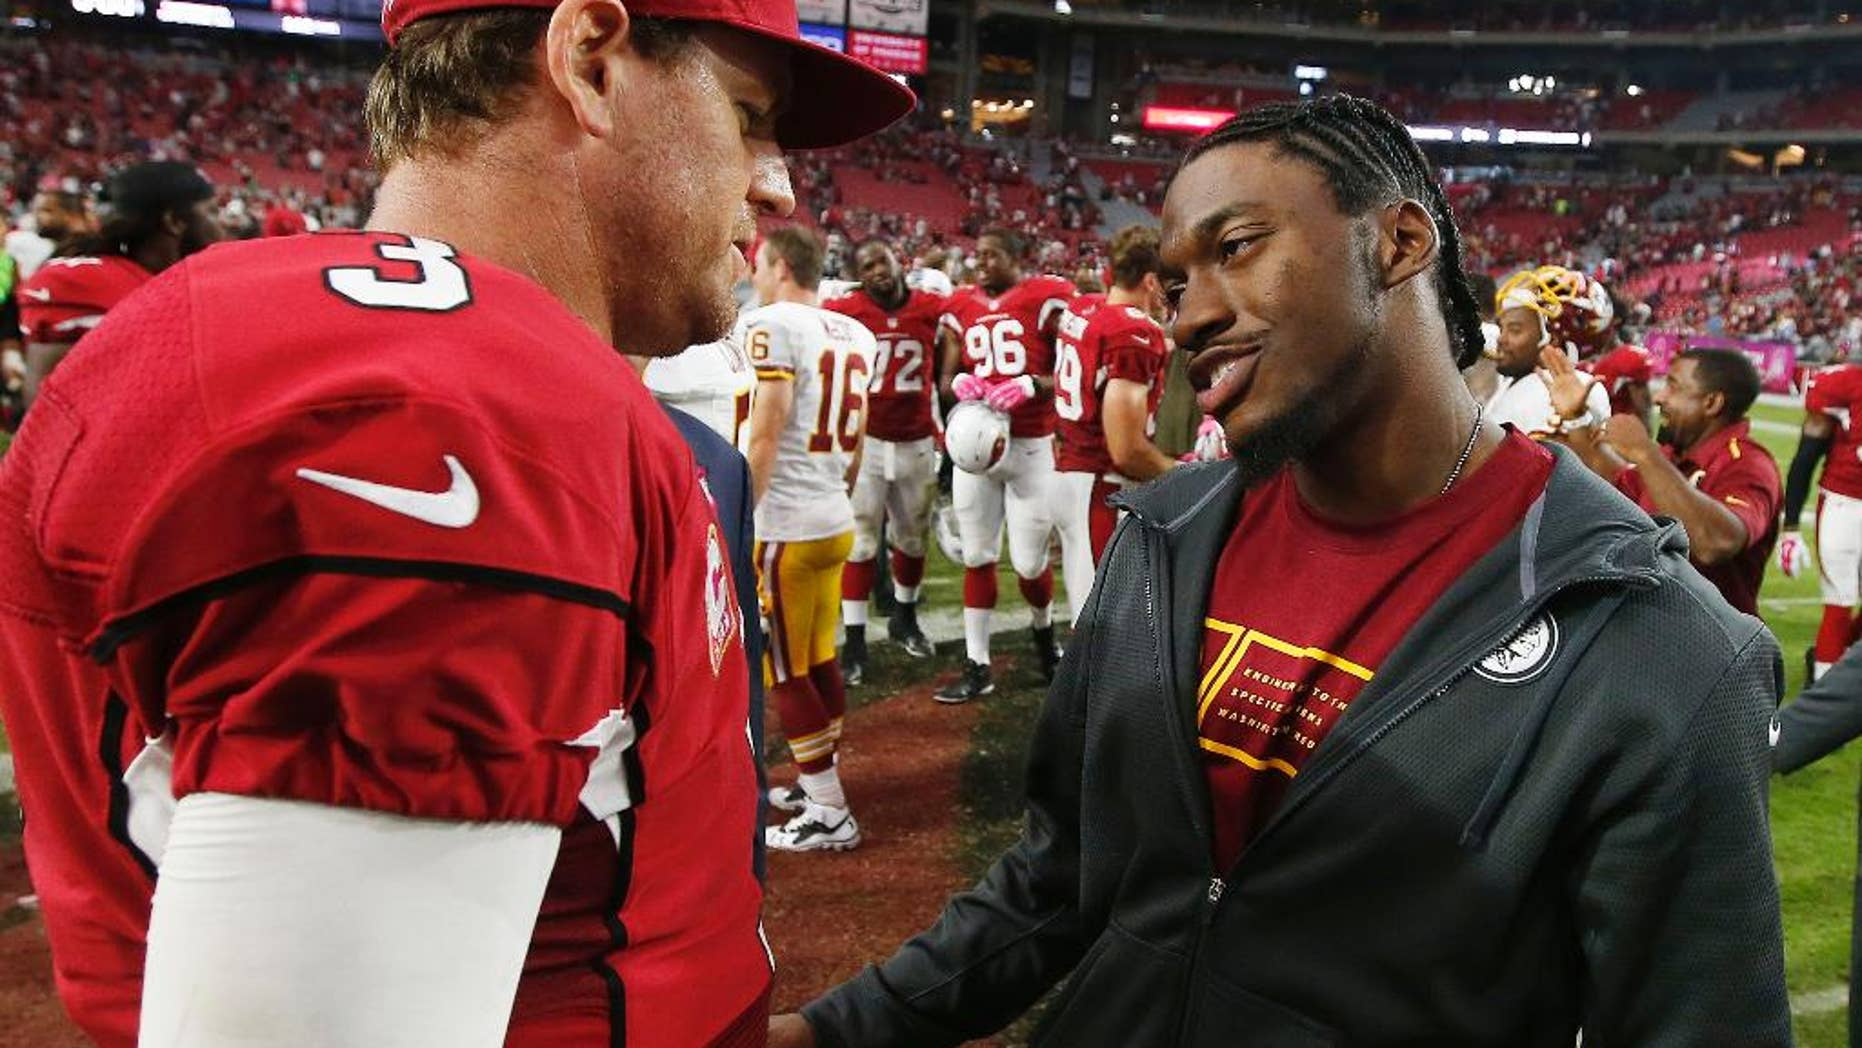 Injured Washington Redskins quarterback Robert Griffin III, right, talks with Arizona Cardinals quarterback Carson Palmer (3) after an NFL football game Sunday, Oct. 12, 2014, in Glendale, Ariz.  The Cardinals defeated the Redskins 30-20. (AP Photo/Ross D. Franklin)